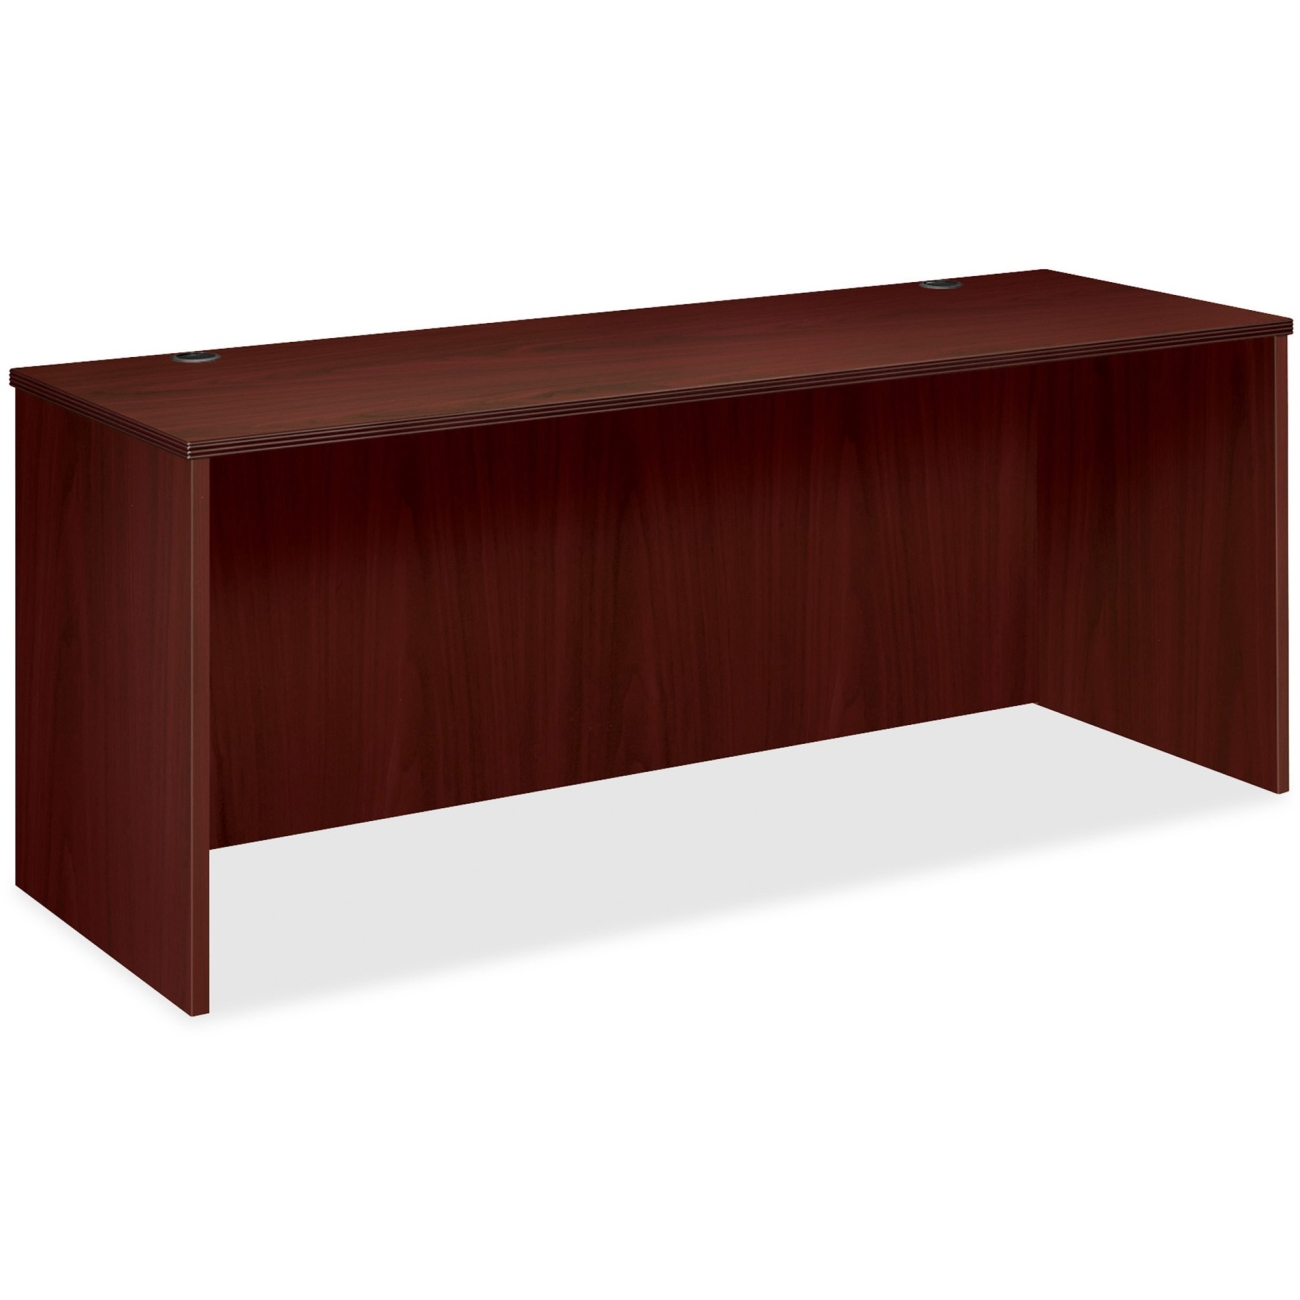 "BASYX By Hon Bw Series Credenza Shell - 72"" Width X 24"" D..."